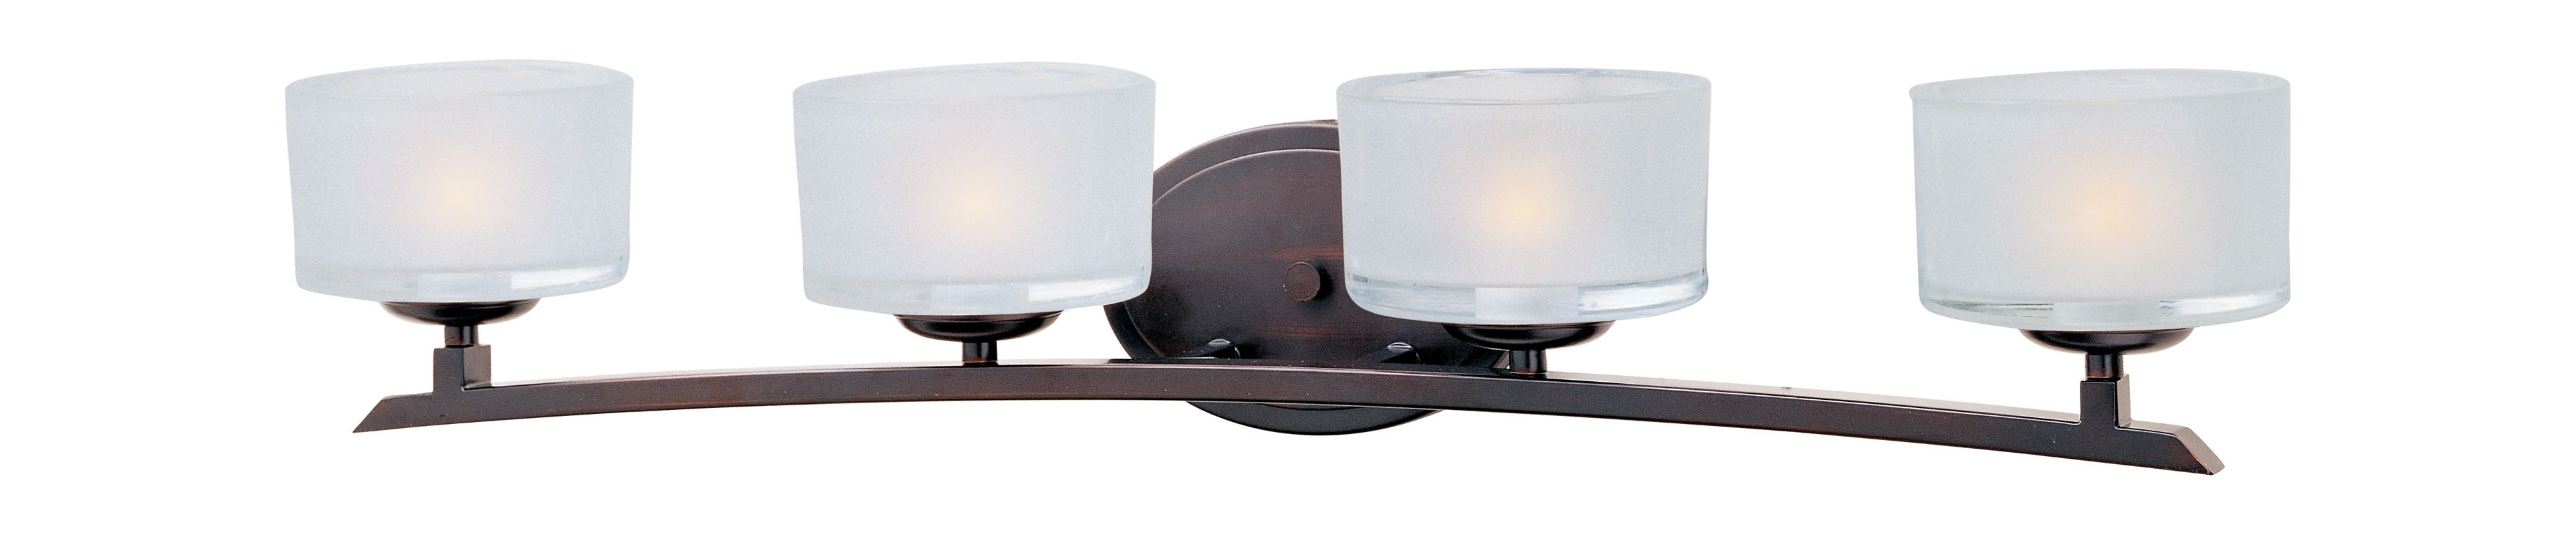 "Maxim 19054 4 Light 29"" Wide Bathroom Fixture from the Elle Collection"